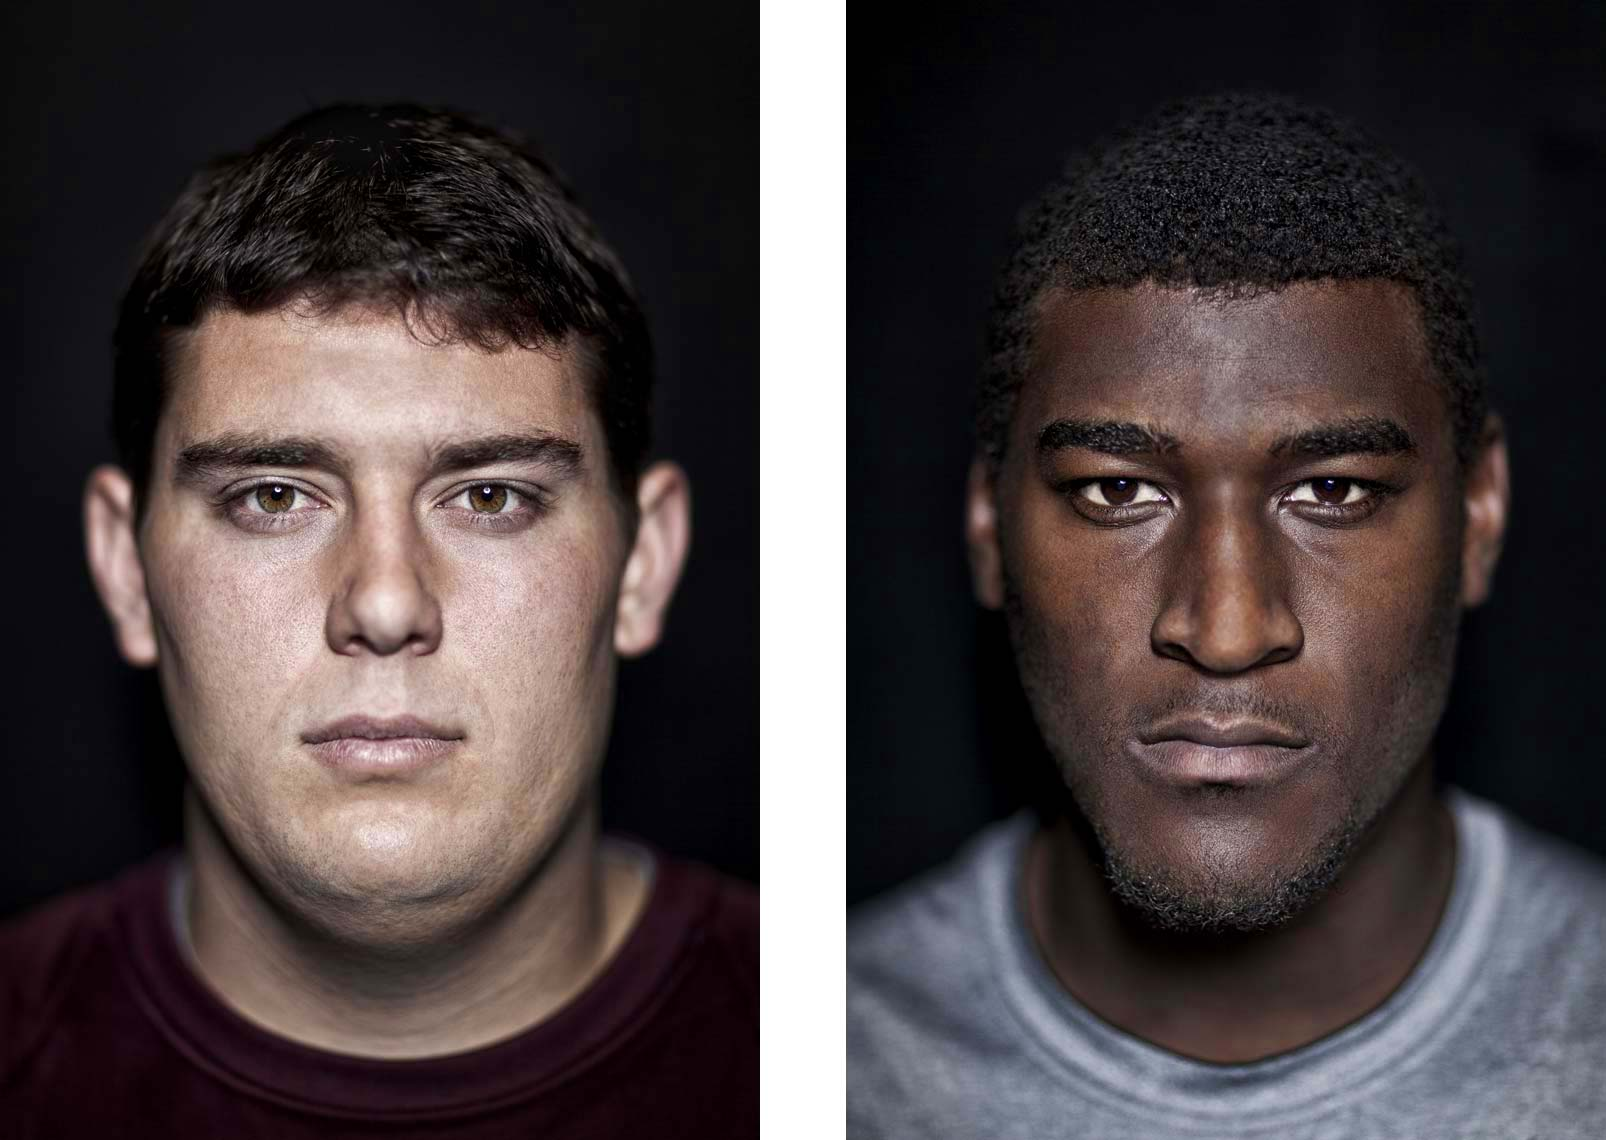 Philadelphia Photographer STEVE BOYLE - Randy Bullock, Justin Blackmon